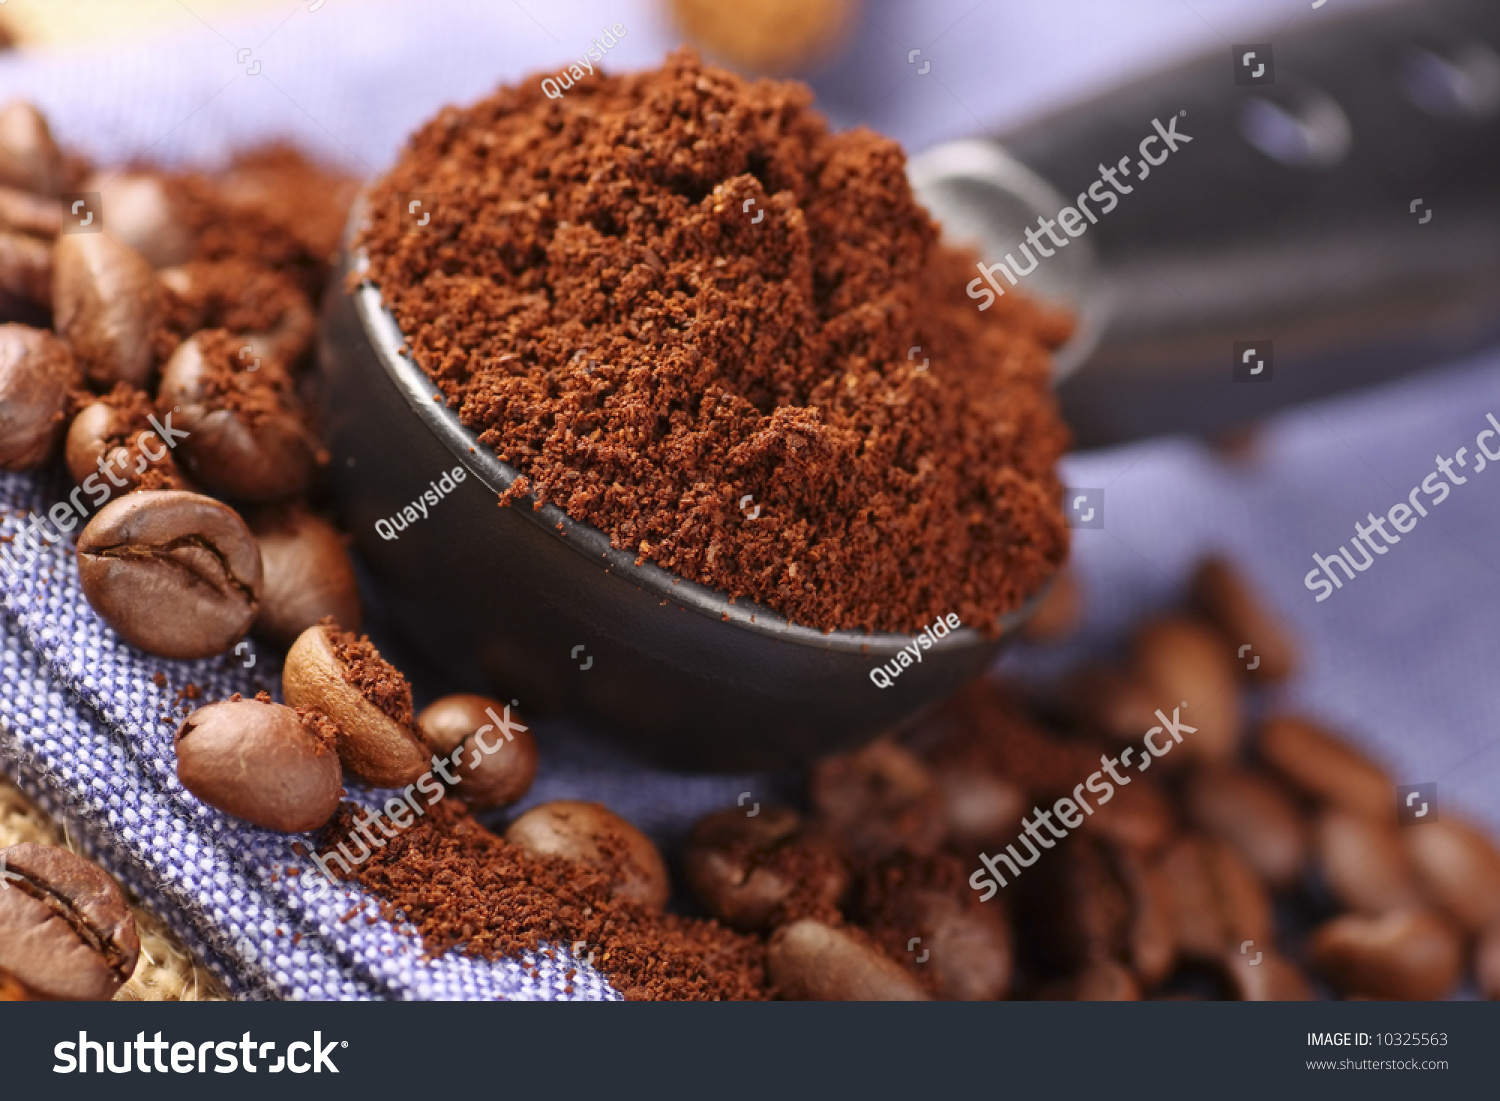 marketing and freshly ground coffee This statistic shows the sales of single-serve coffee pods compared to standard fresh ground coffee in canada from 2005 to 2014 coffee pod sales increased from 30 thousand us dollars in 2005 to.